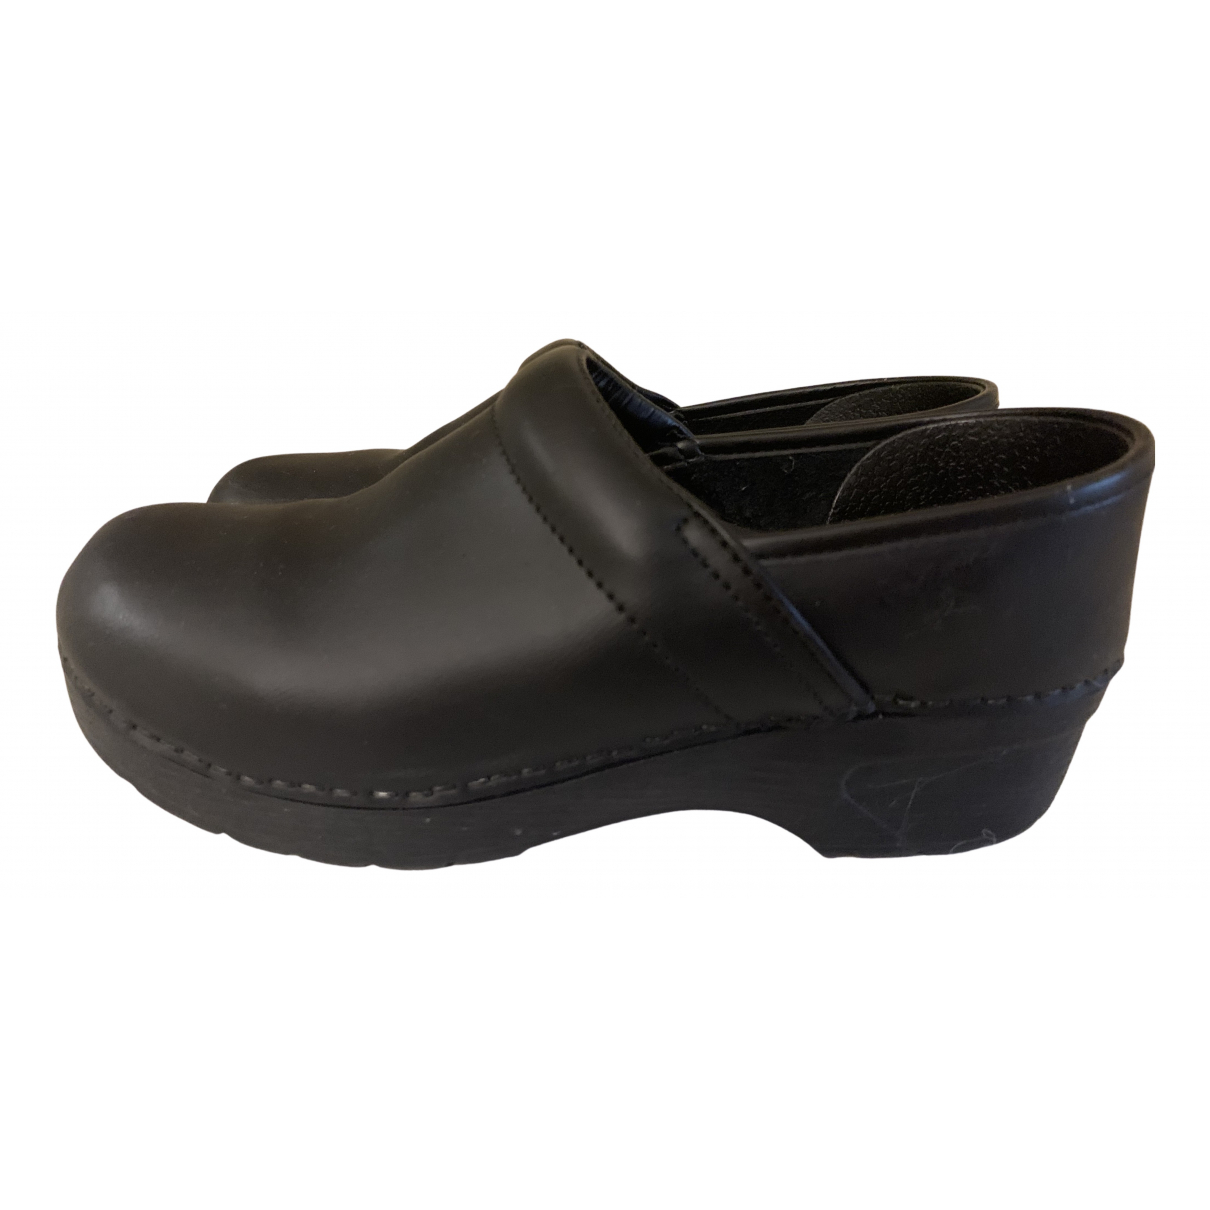 Non Signé / Unsigned N Black Leather Mules & Clogs for Women 37 EU